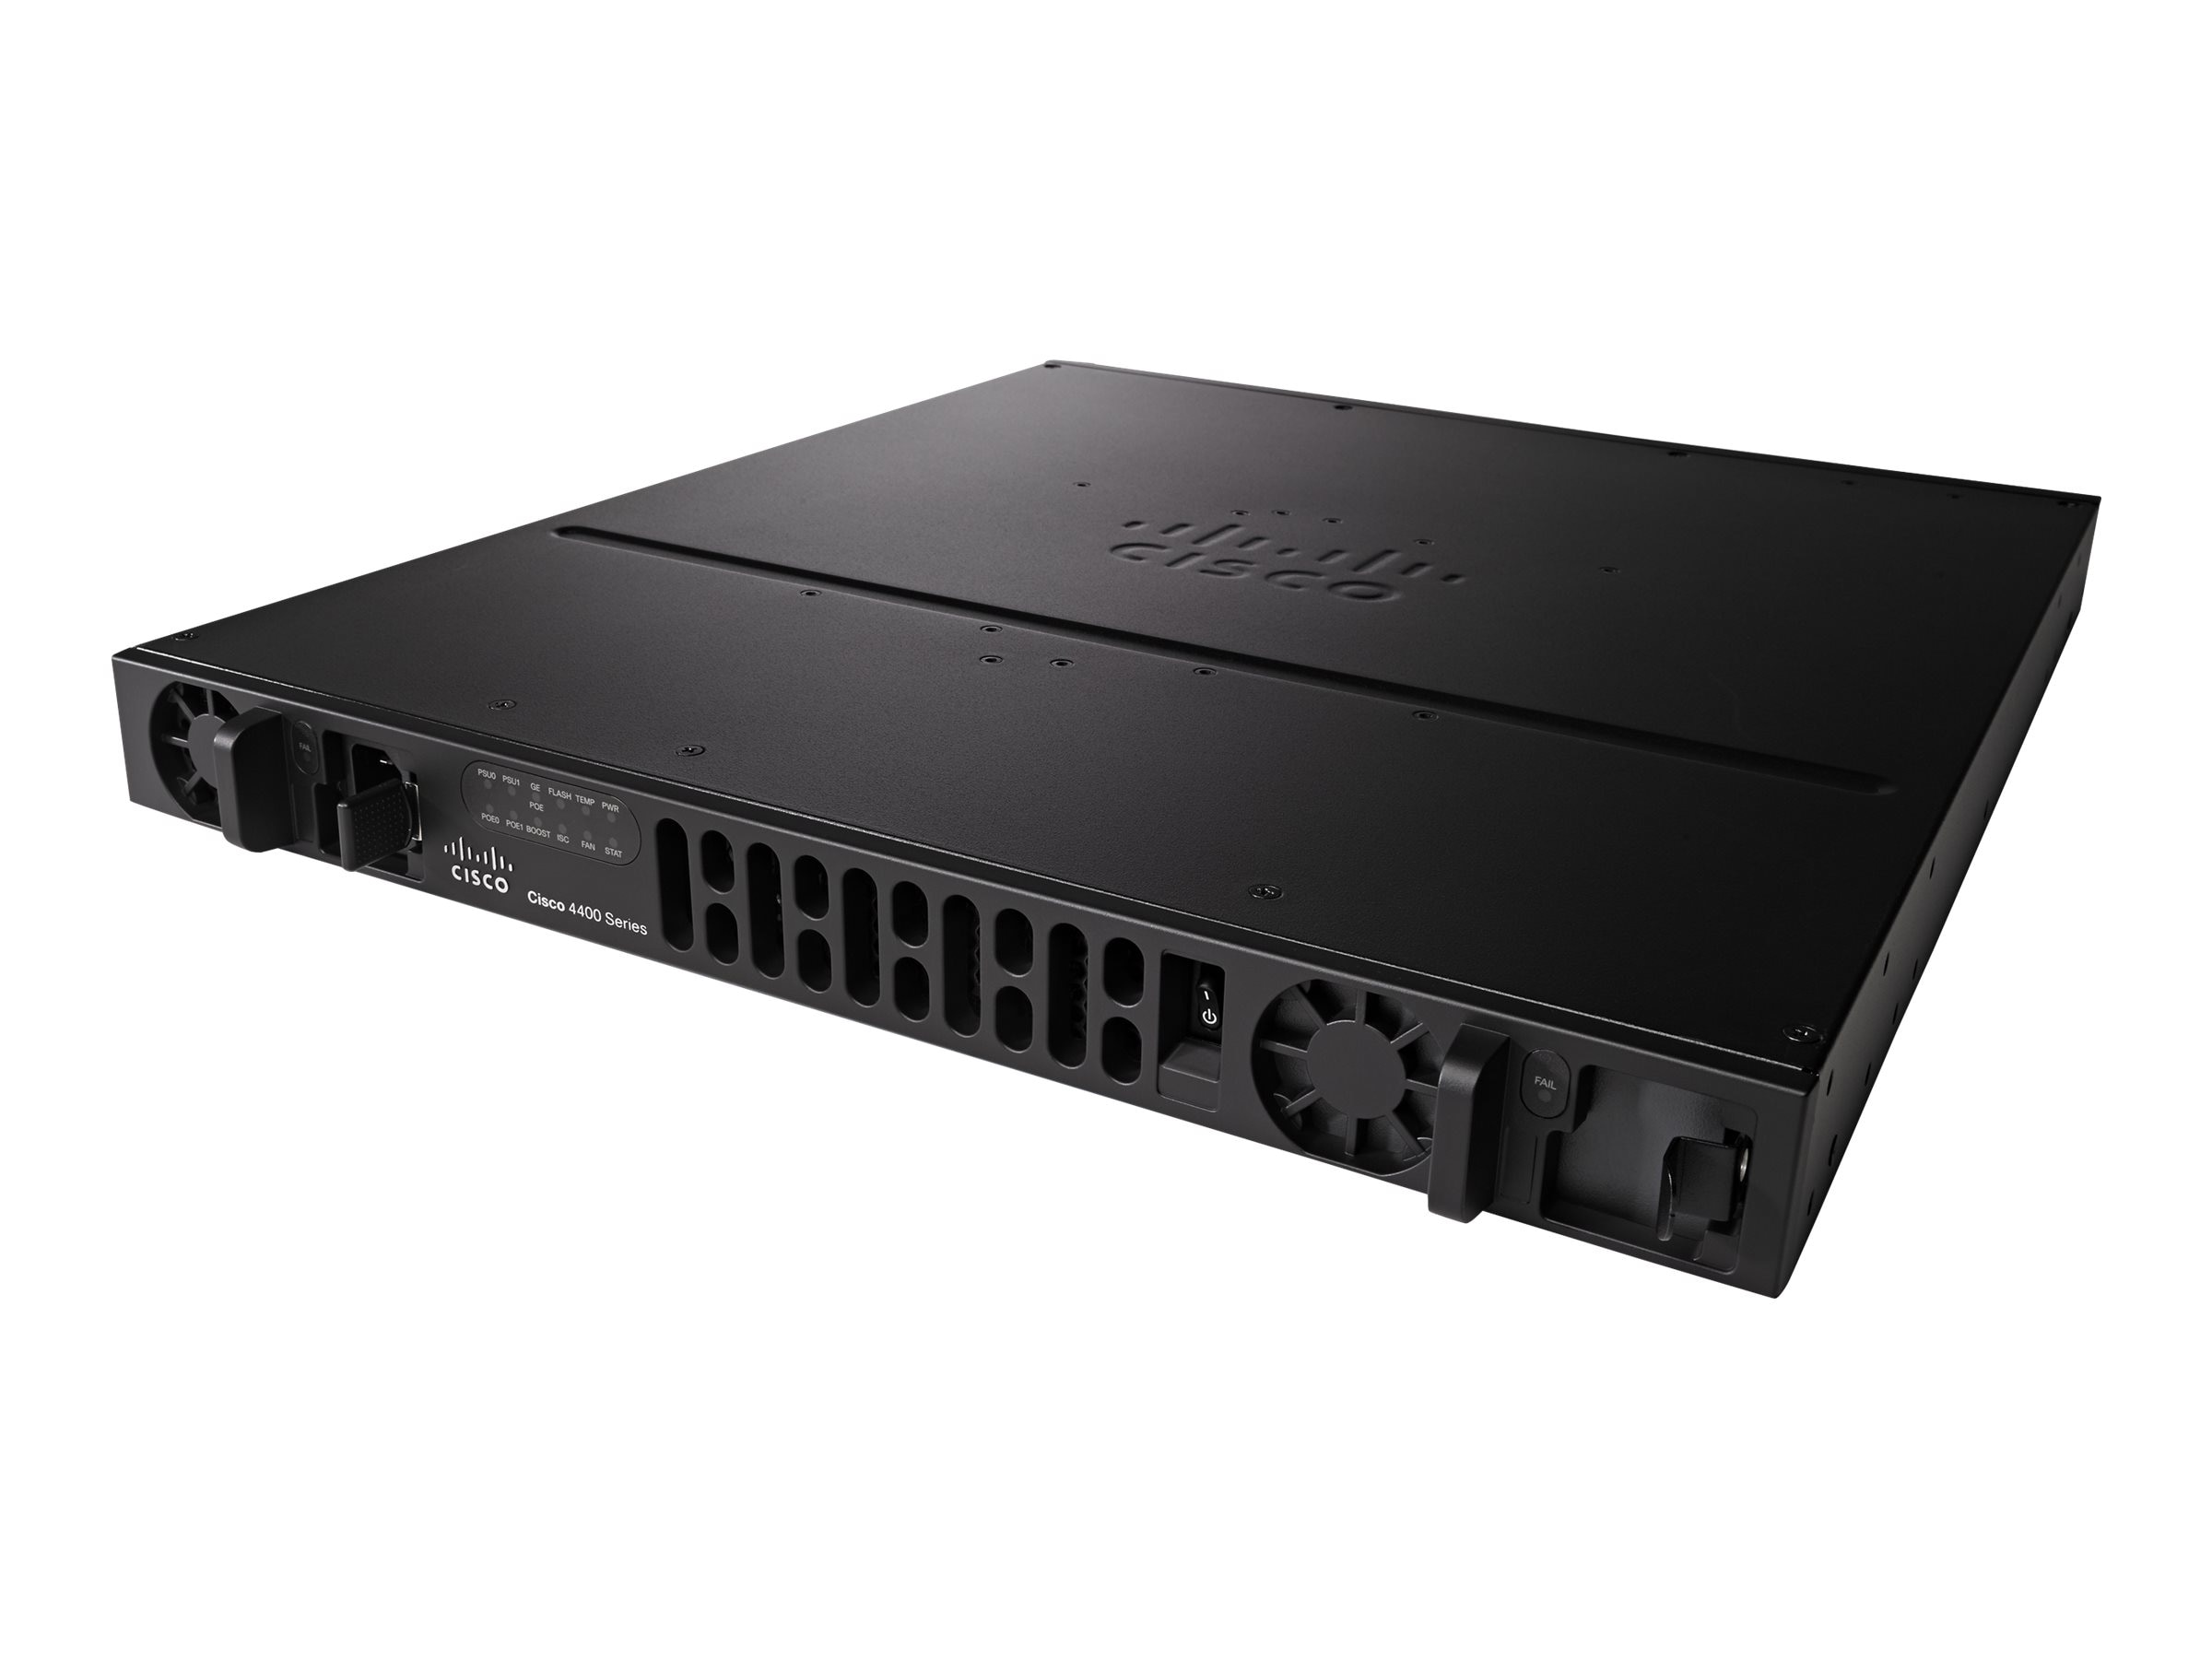 Cisco ISR4431-AX/K9 Image 1